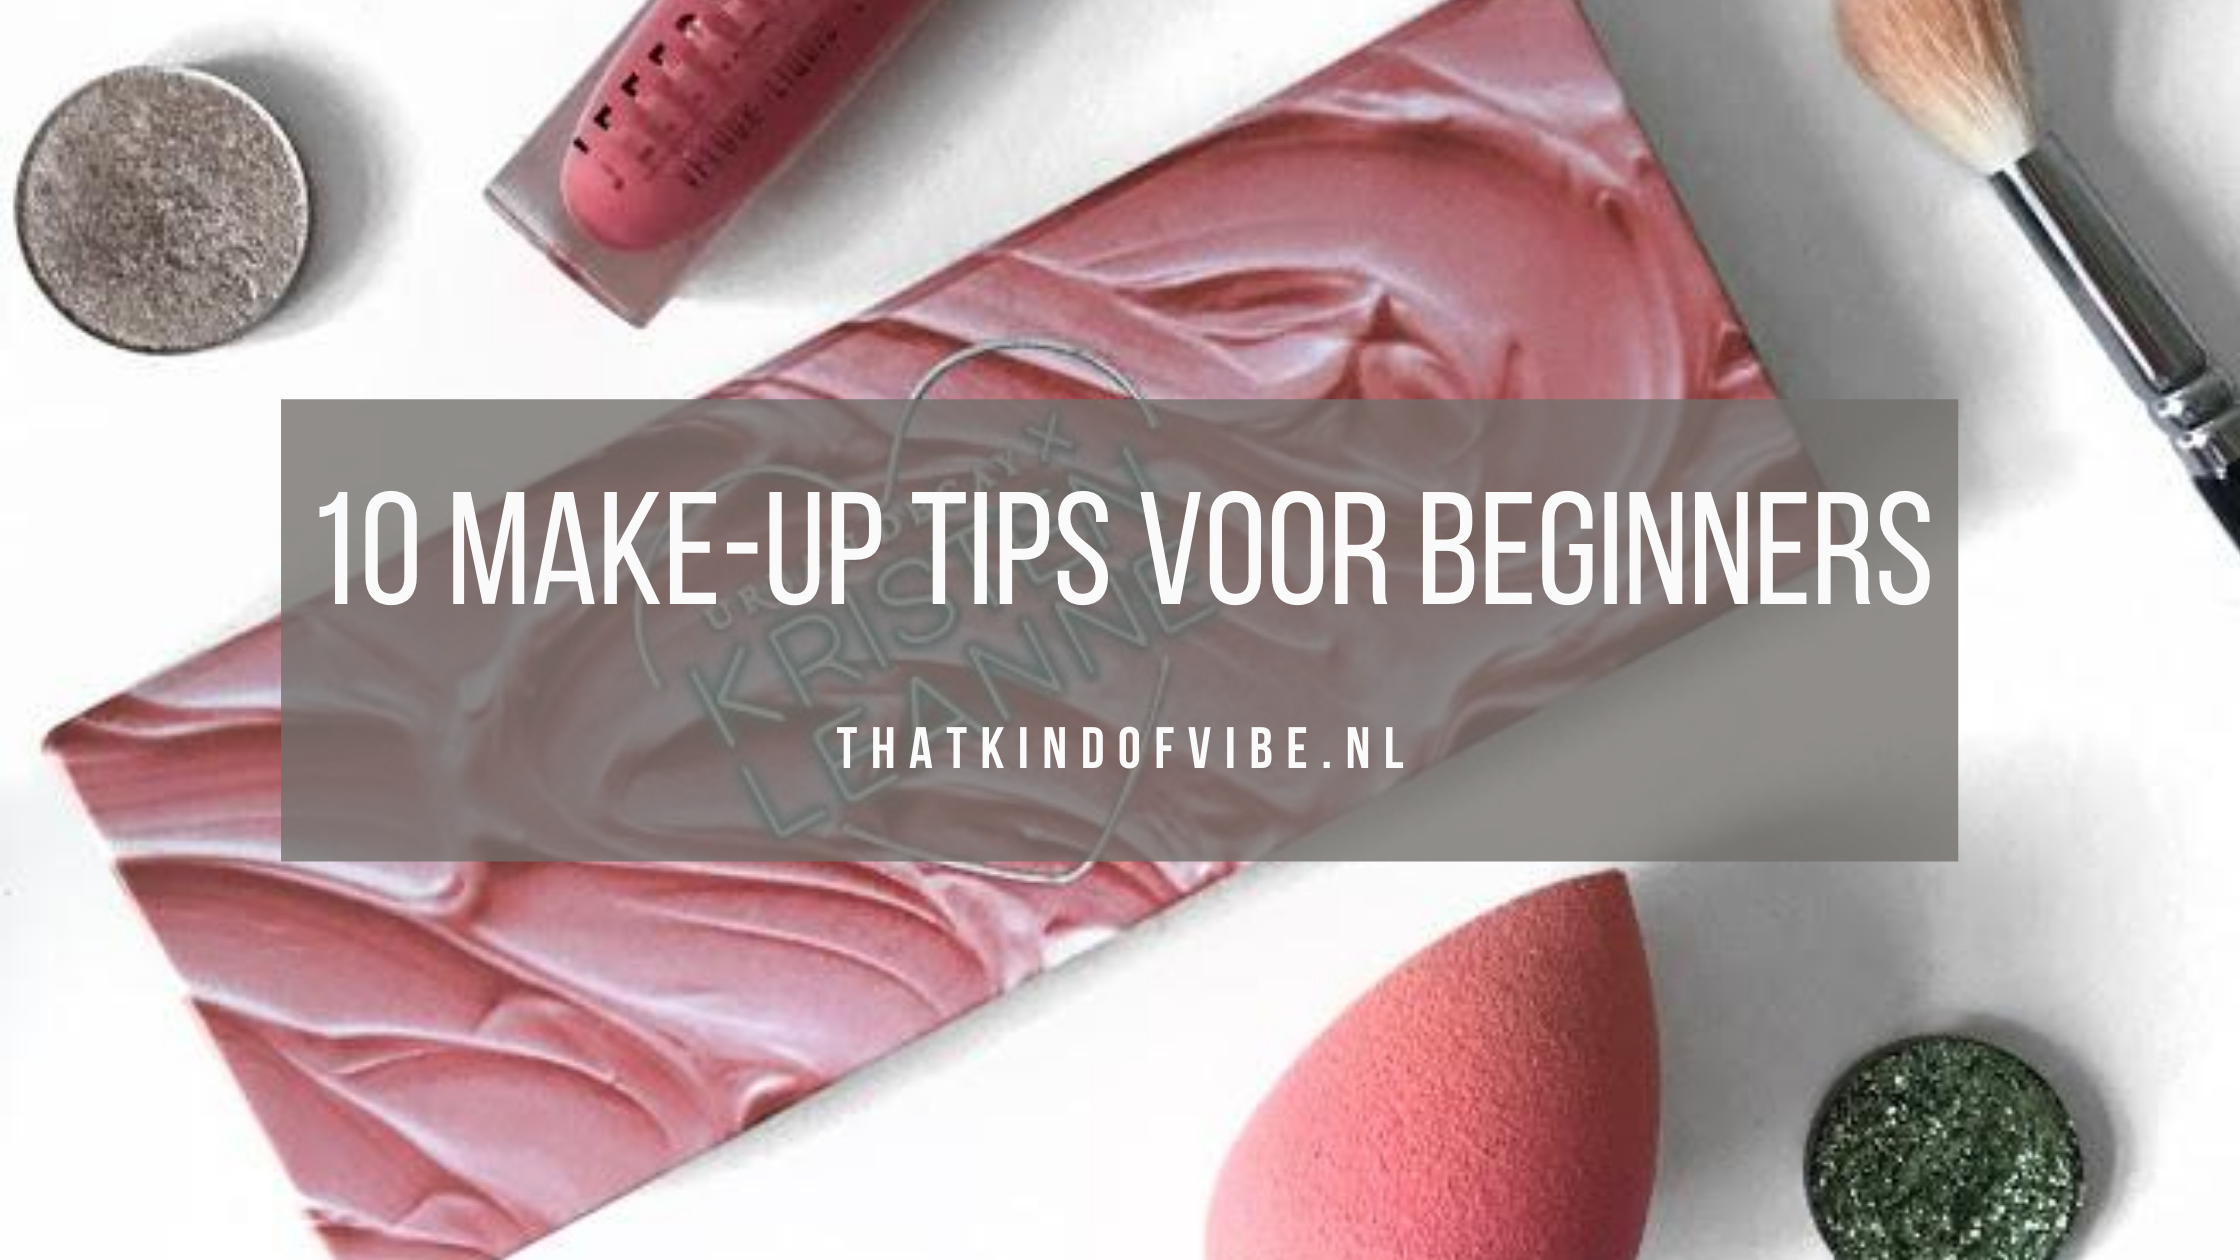 10 make-up tips voor beginners